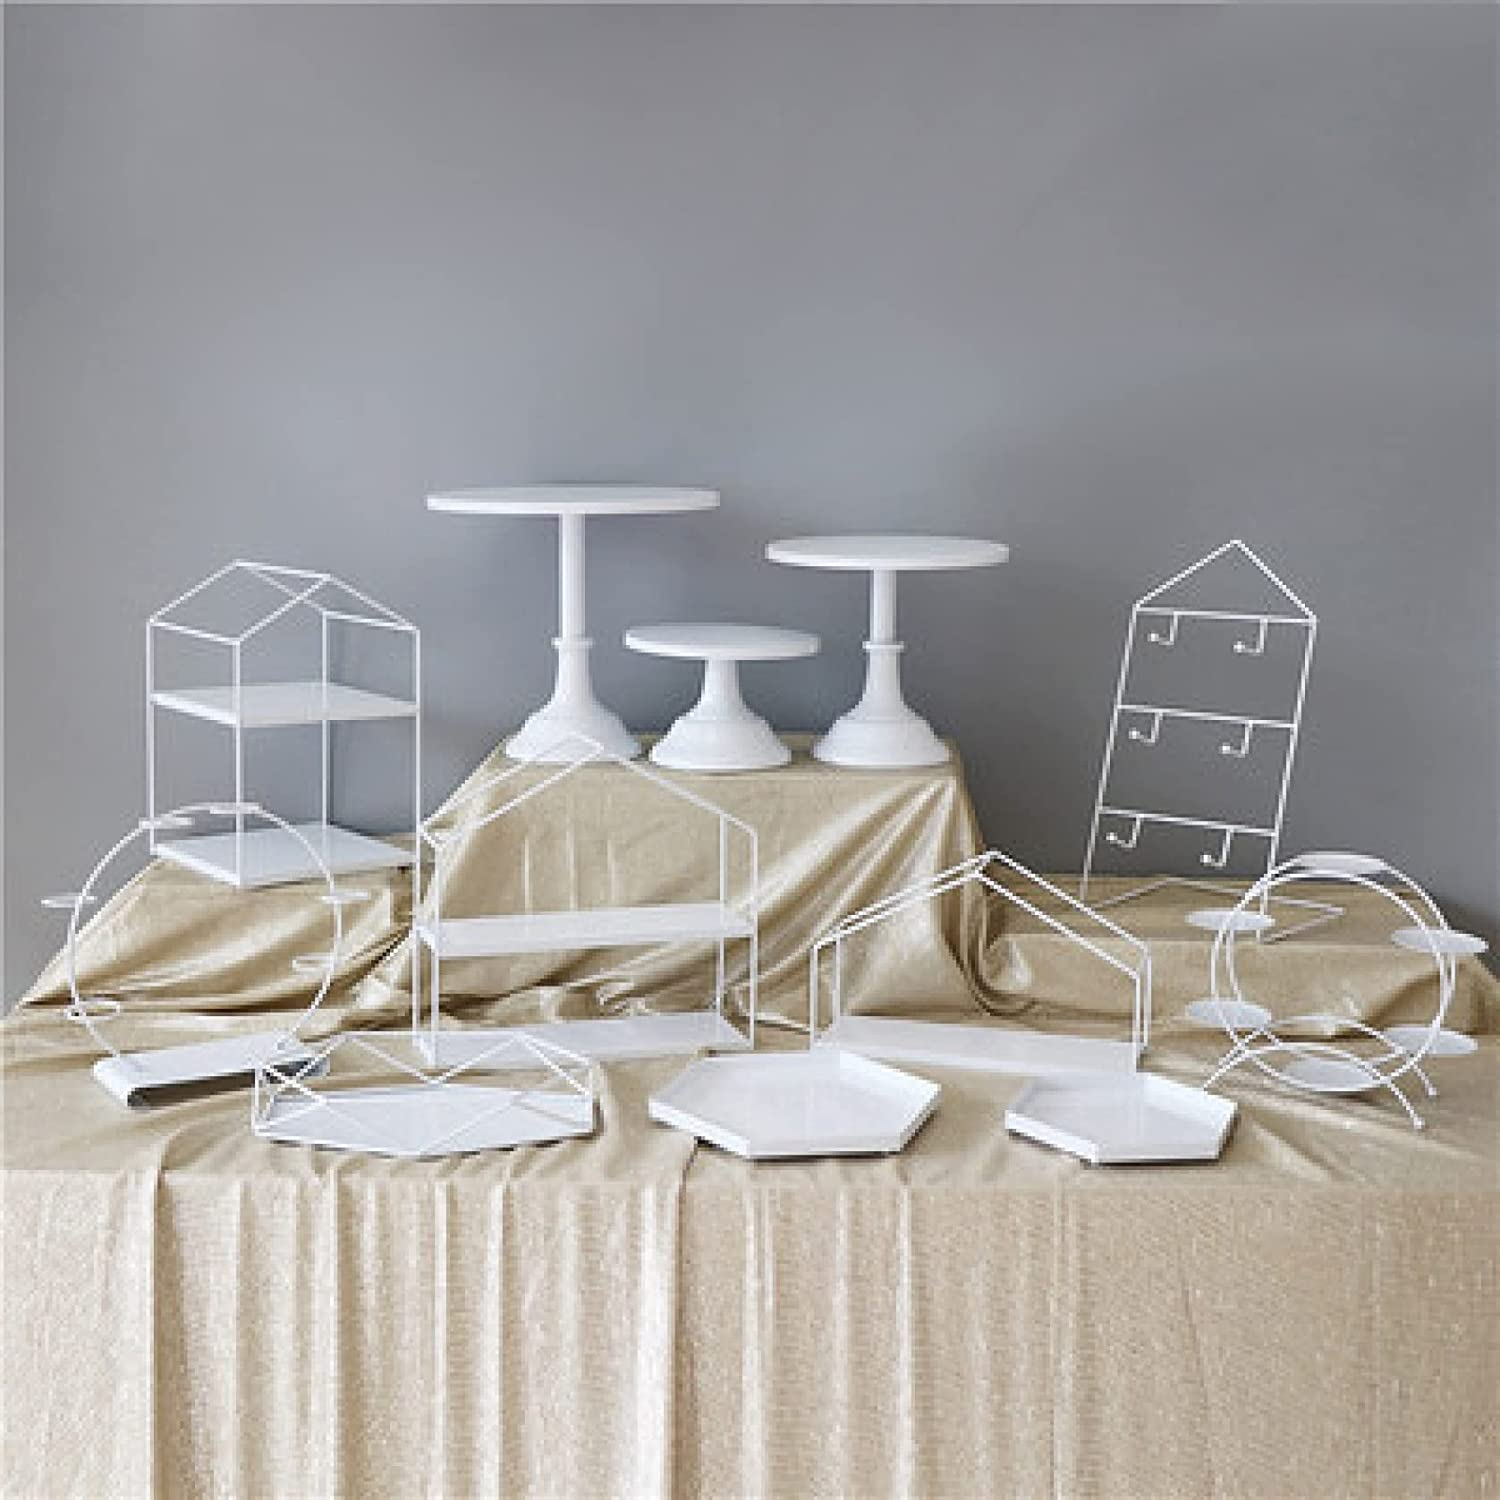 New popularity Metal Cake Stands Set White Cupcake Holder Dessert Tray Popular products Serving